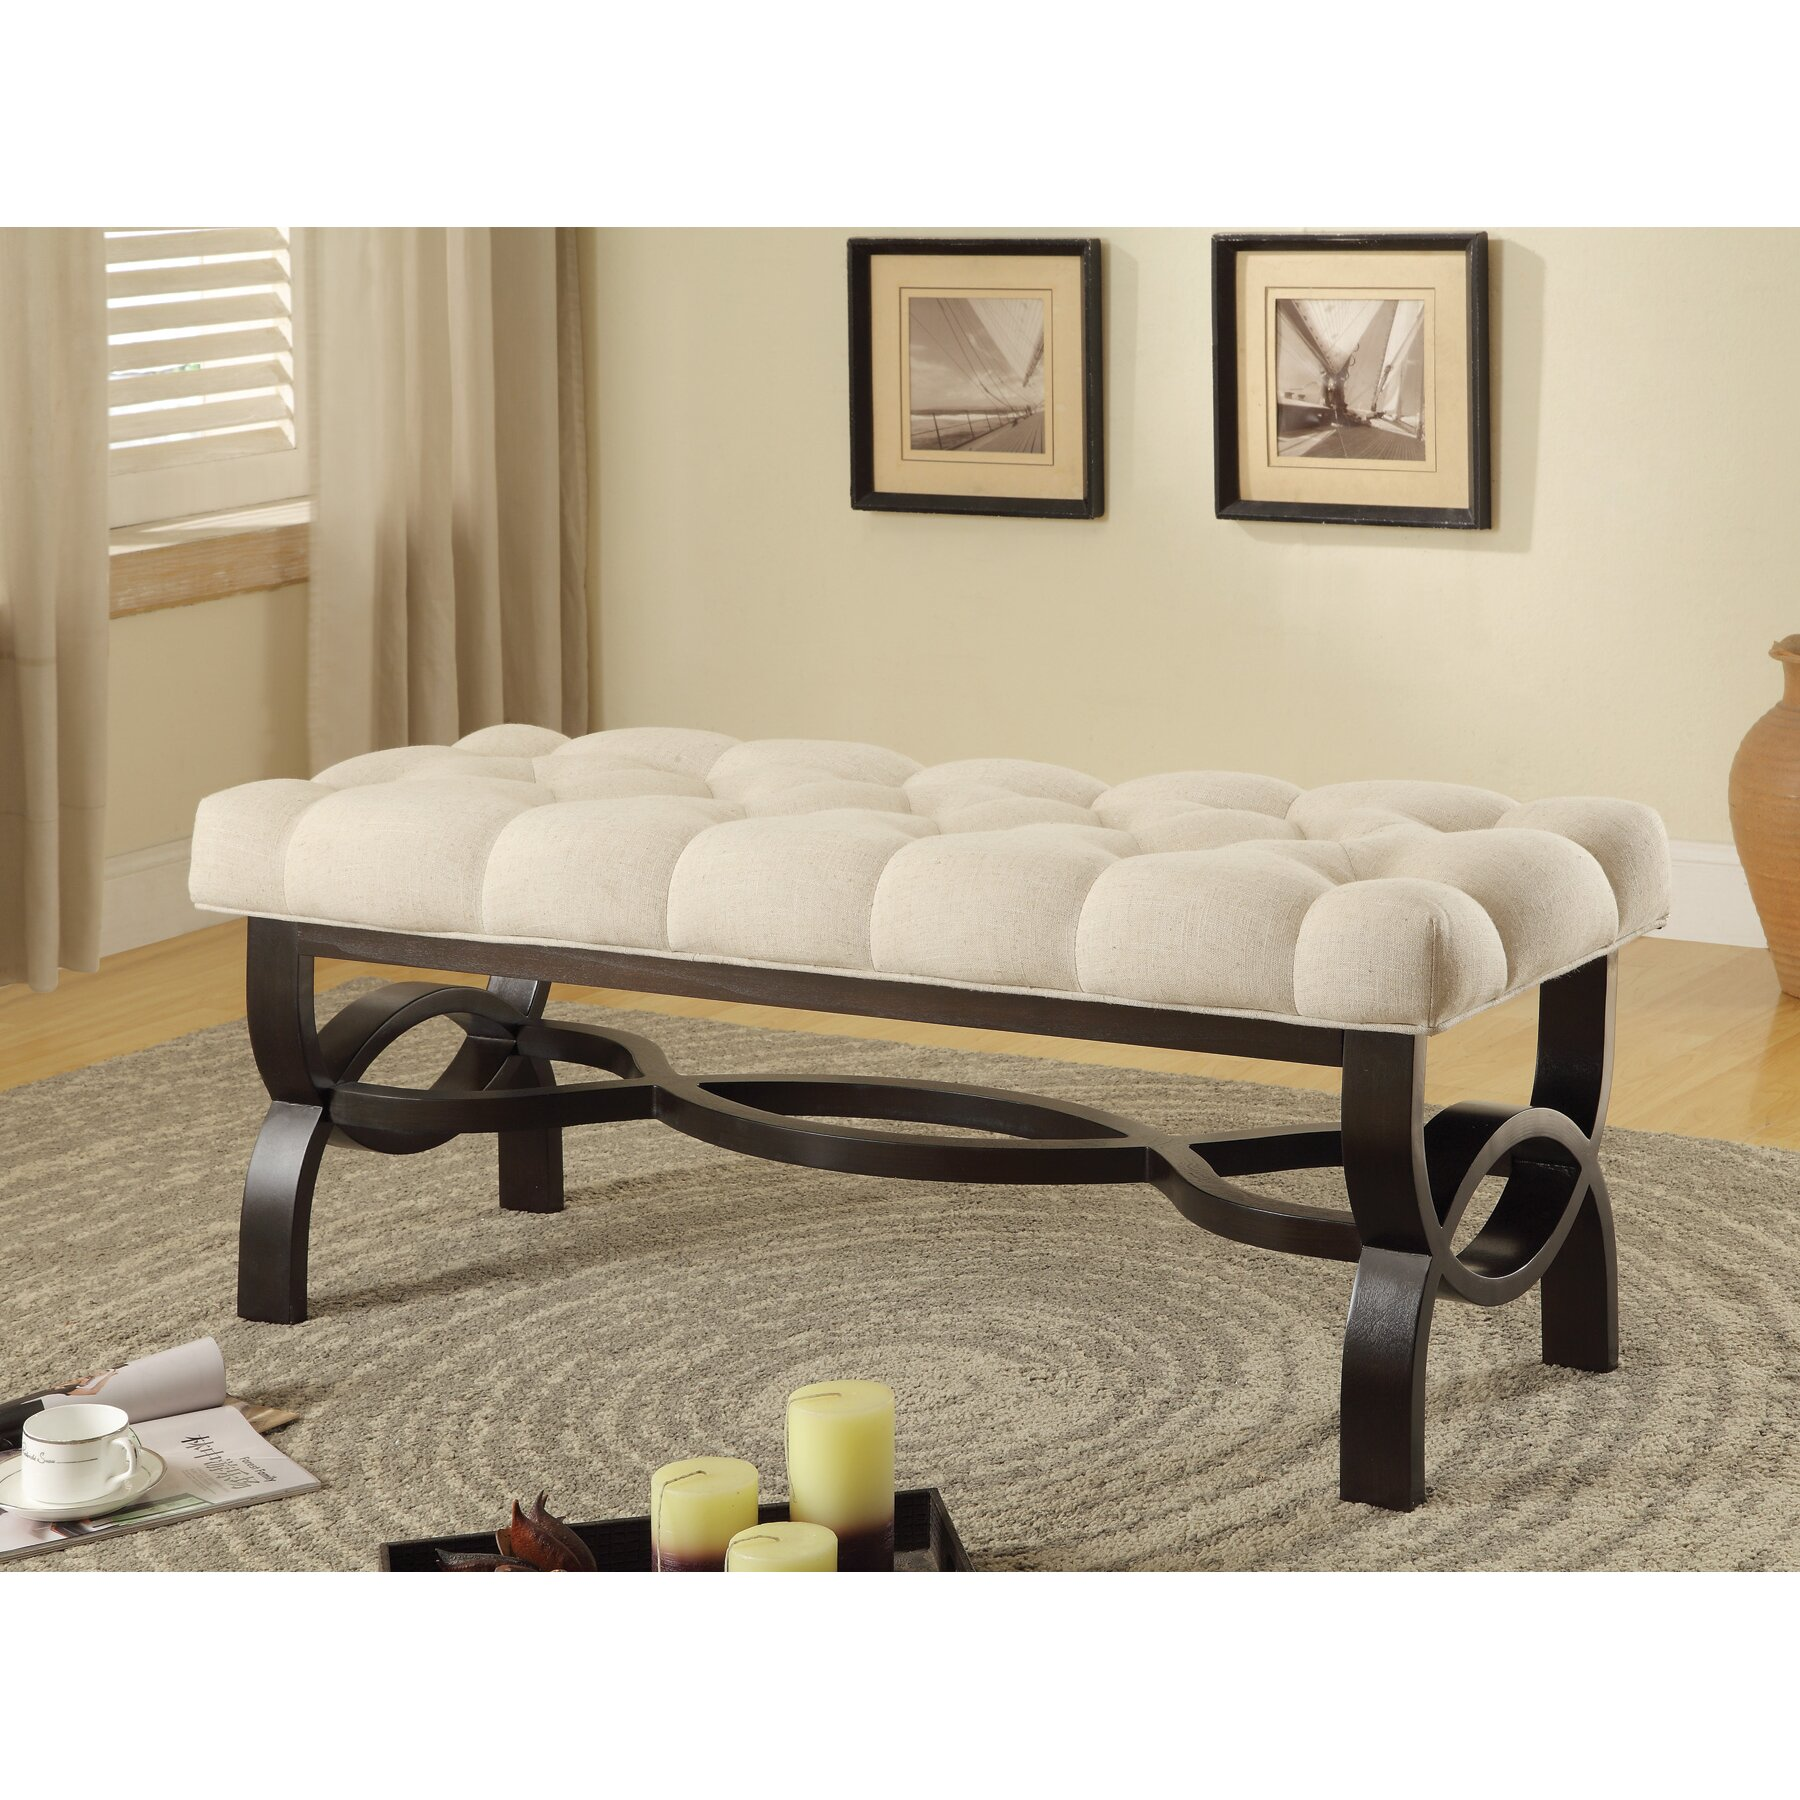 wildon home bedroom bench reviews wayfair